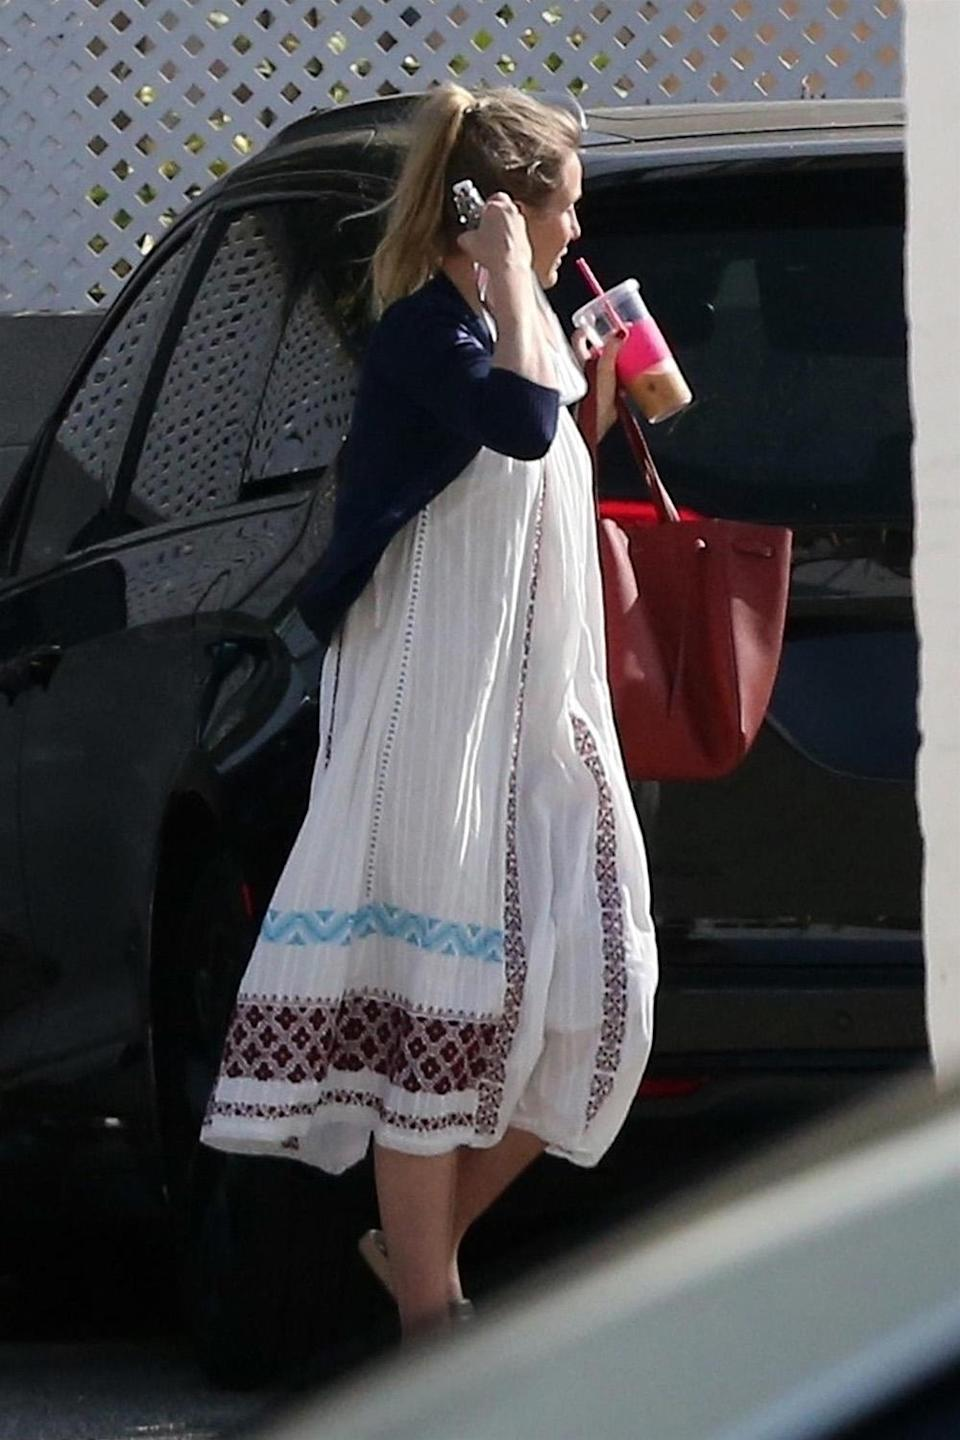 Cameron Diaz wore a flowing dress on Feb. 7, which helps the tabloid narrative that she is pregnant. (Photo: BackGrid)